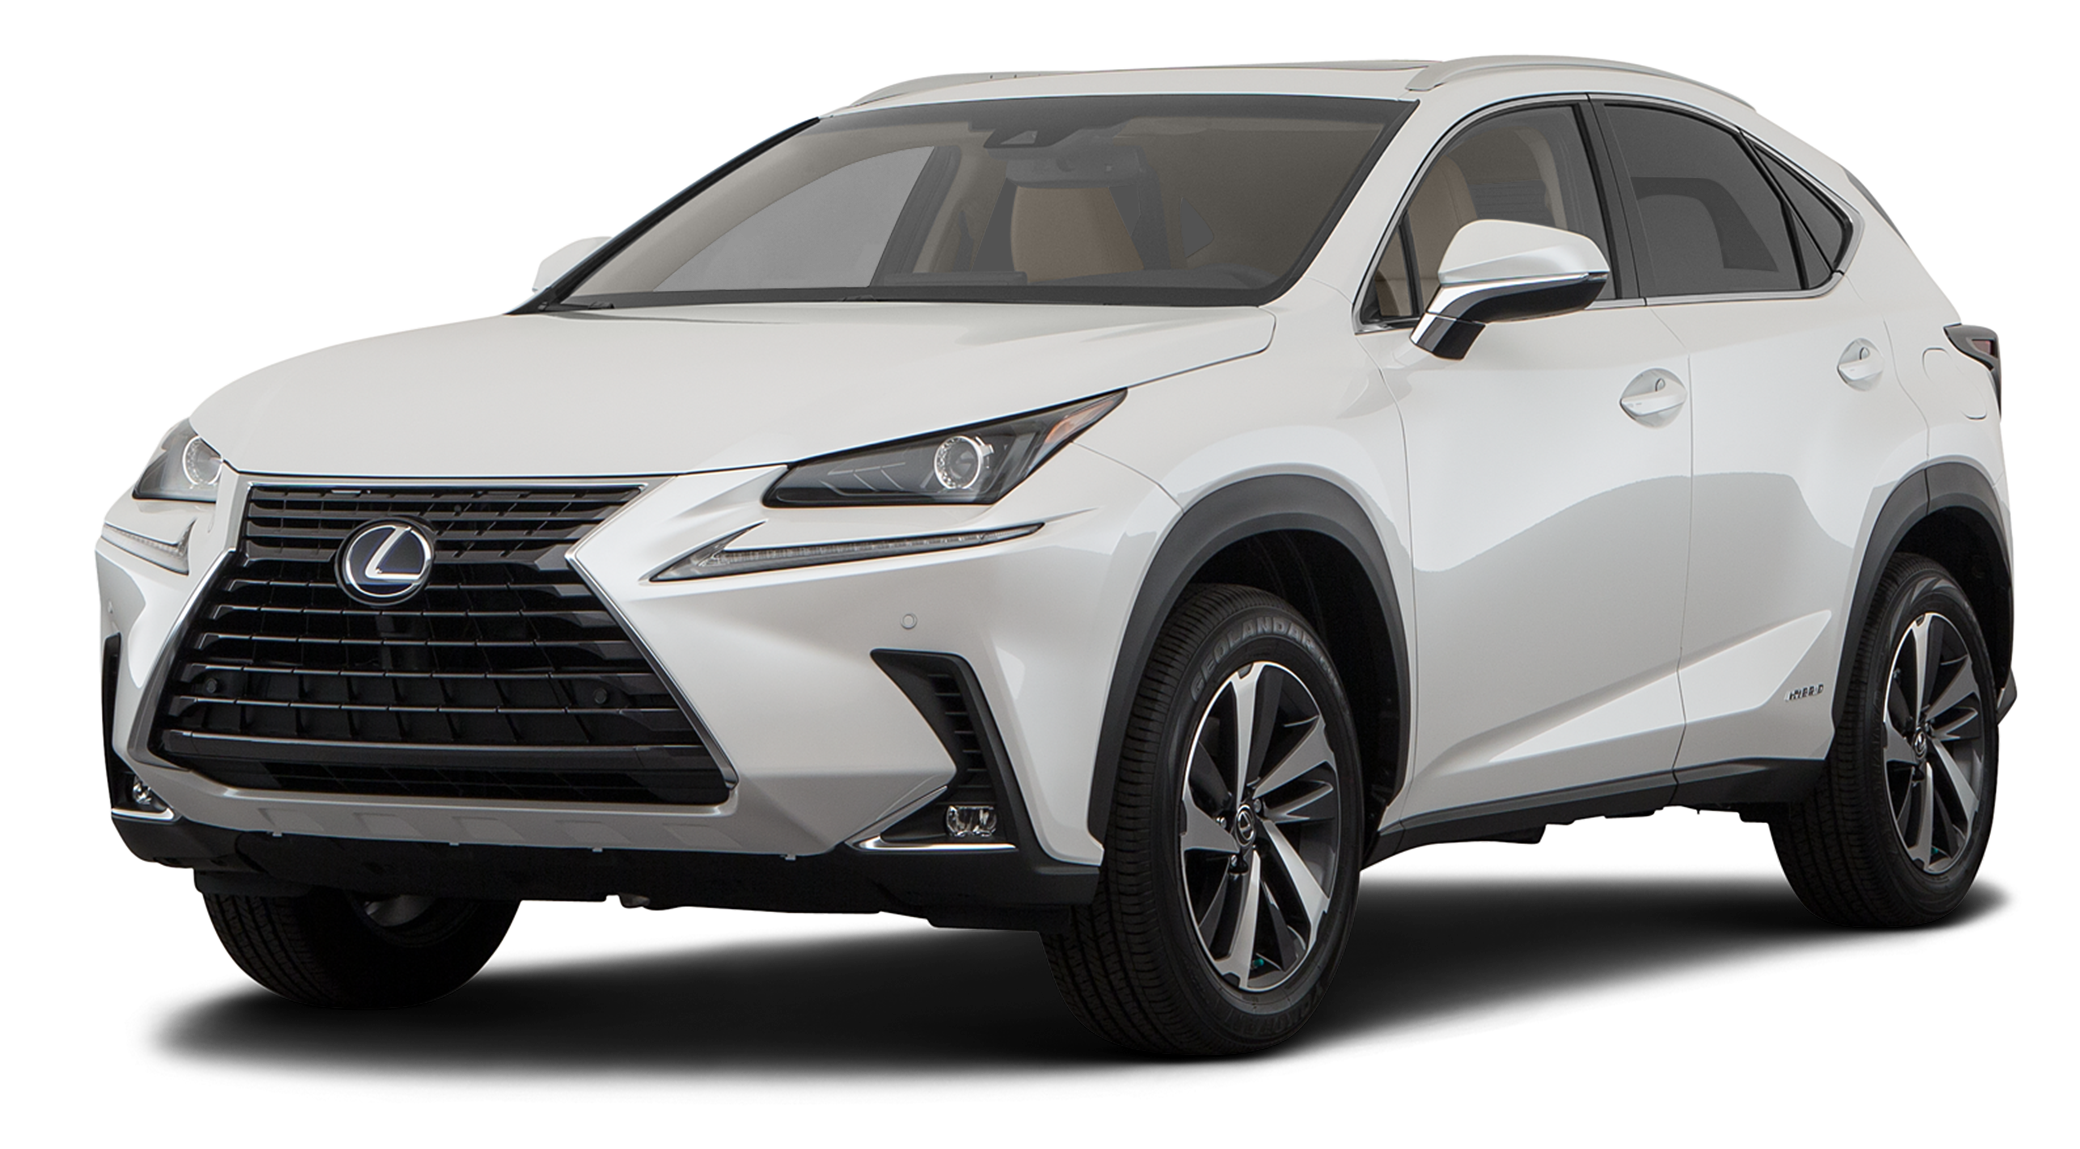 2019 Lexus NX 300h Incentives, Specials & Offers in Plano TX